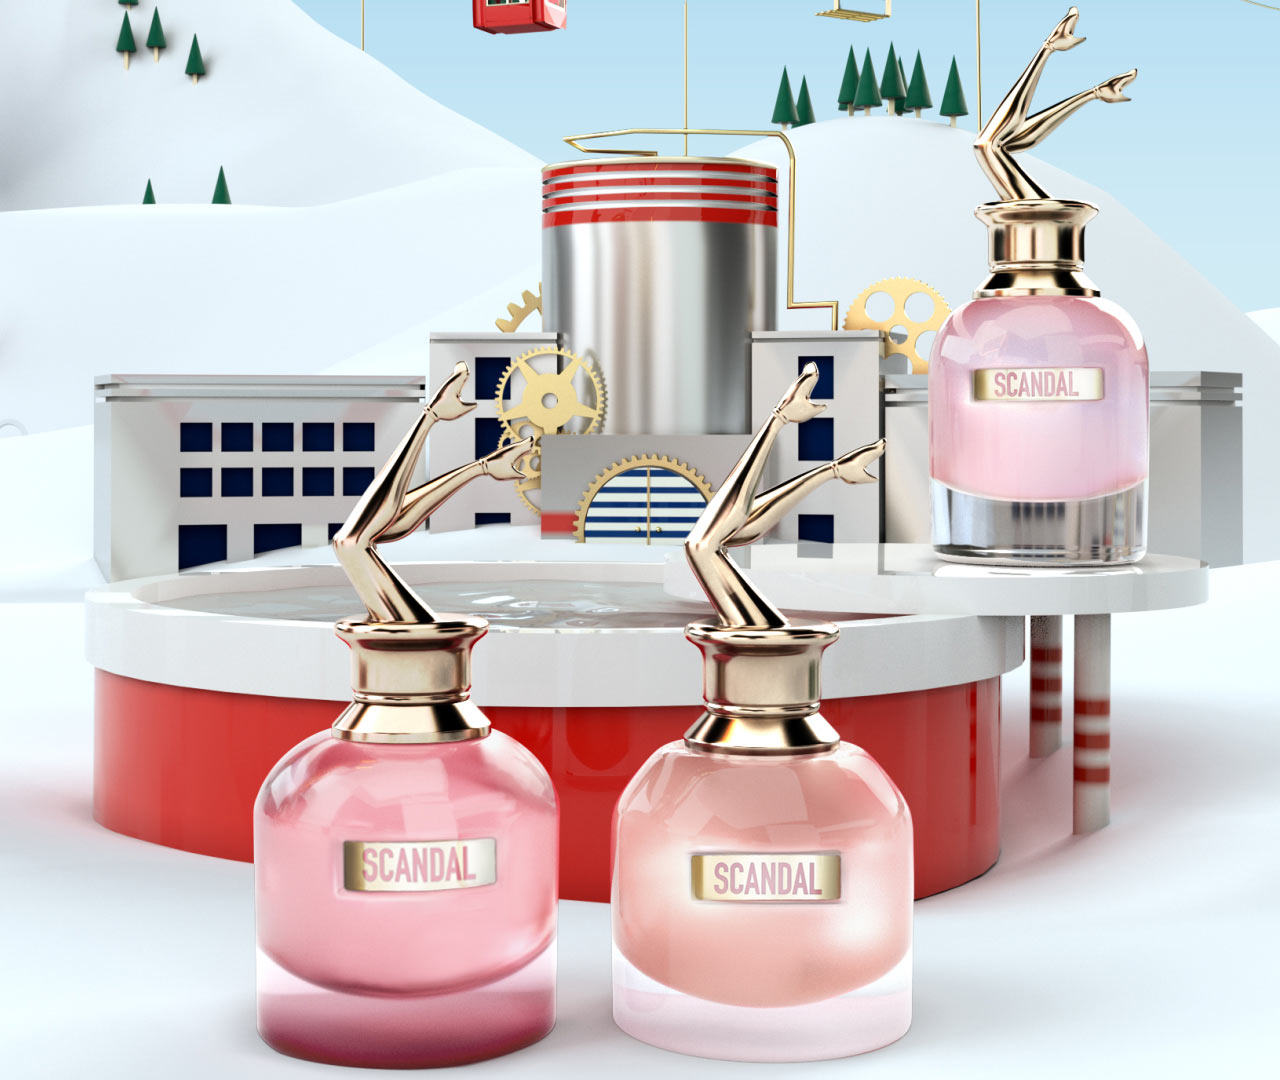 scandal collector 39 s snow globe edition jean paul gaultier perfume a new fragrance for women 2019